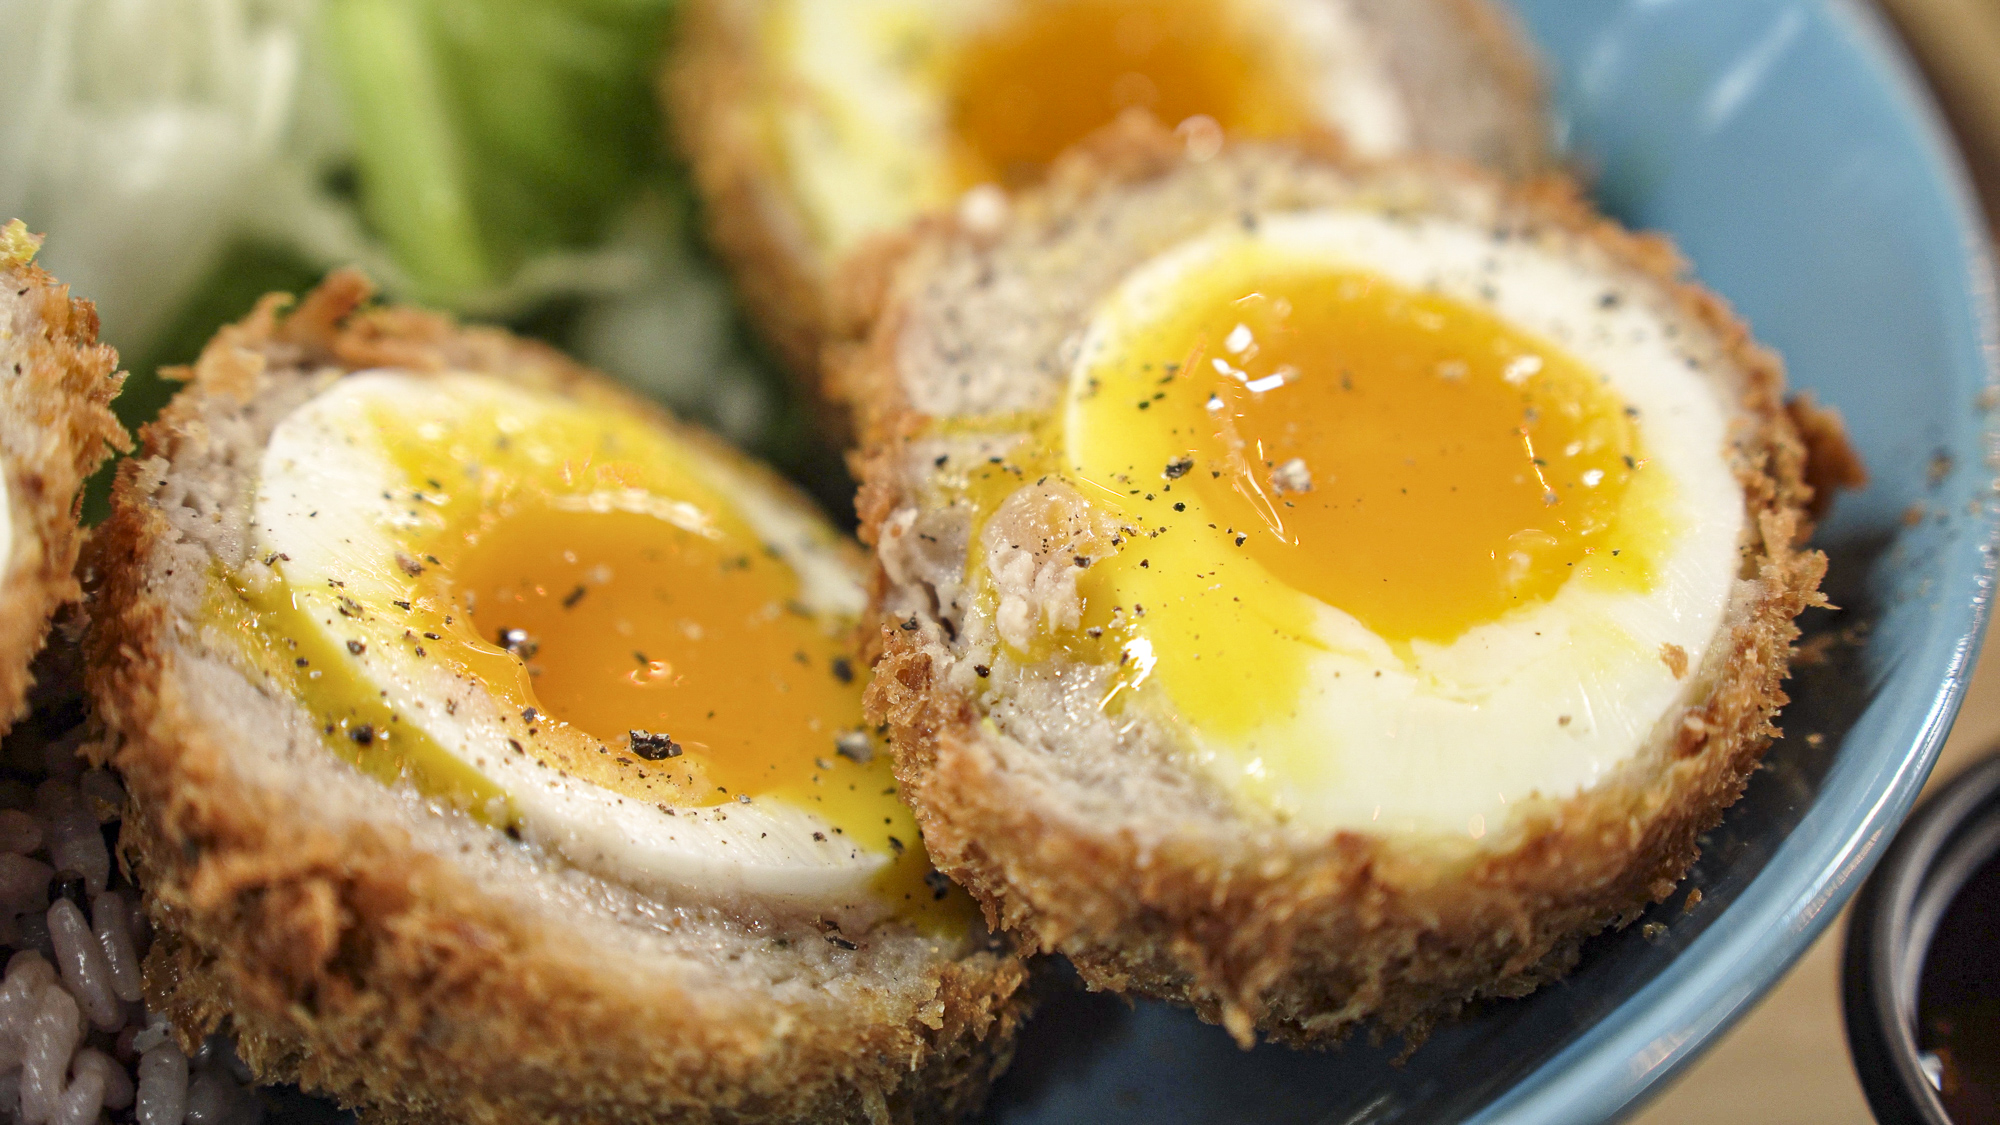 authentic england scotch egg in Korea_Korean street food_스카치 에그